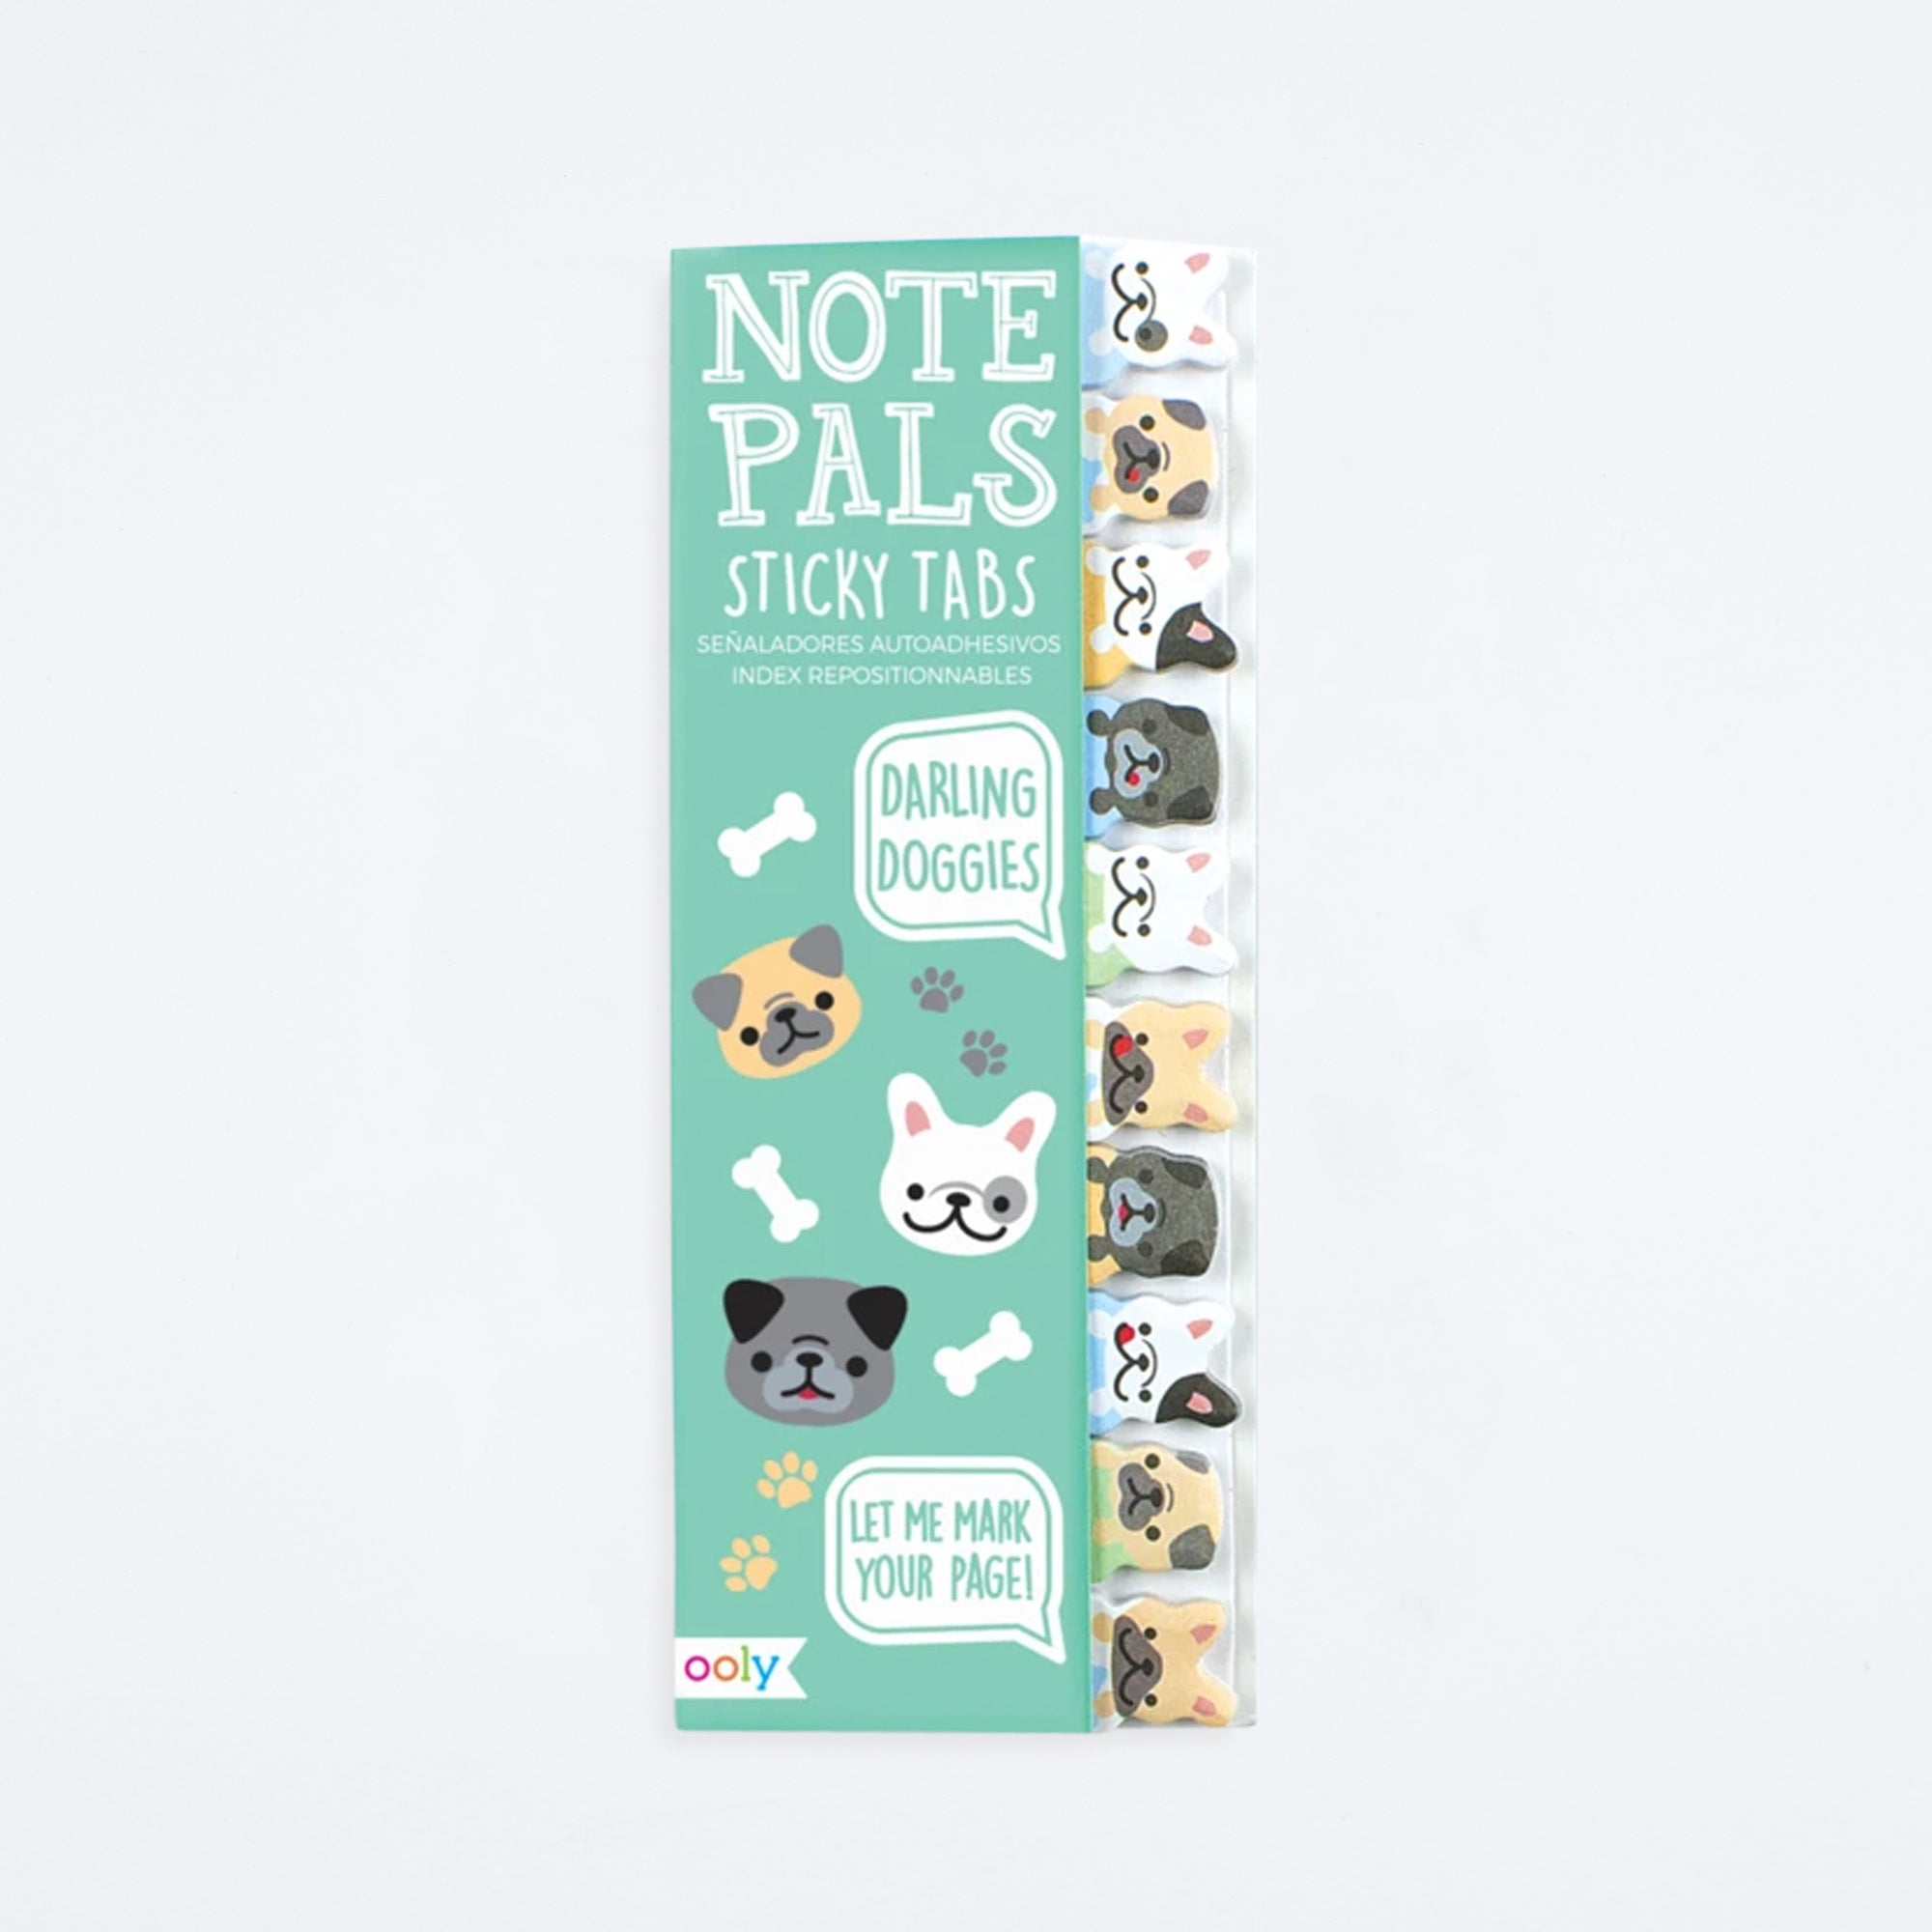 Darling Dogs Note Pals Sticky Notes